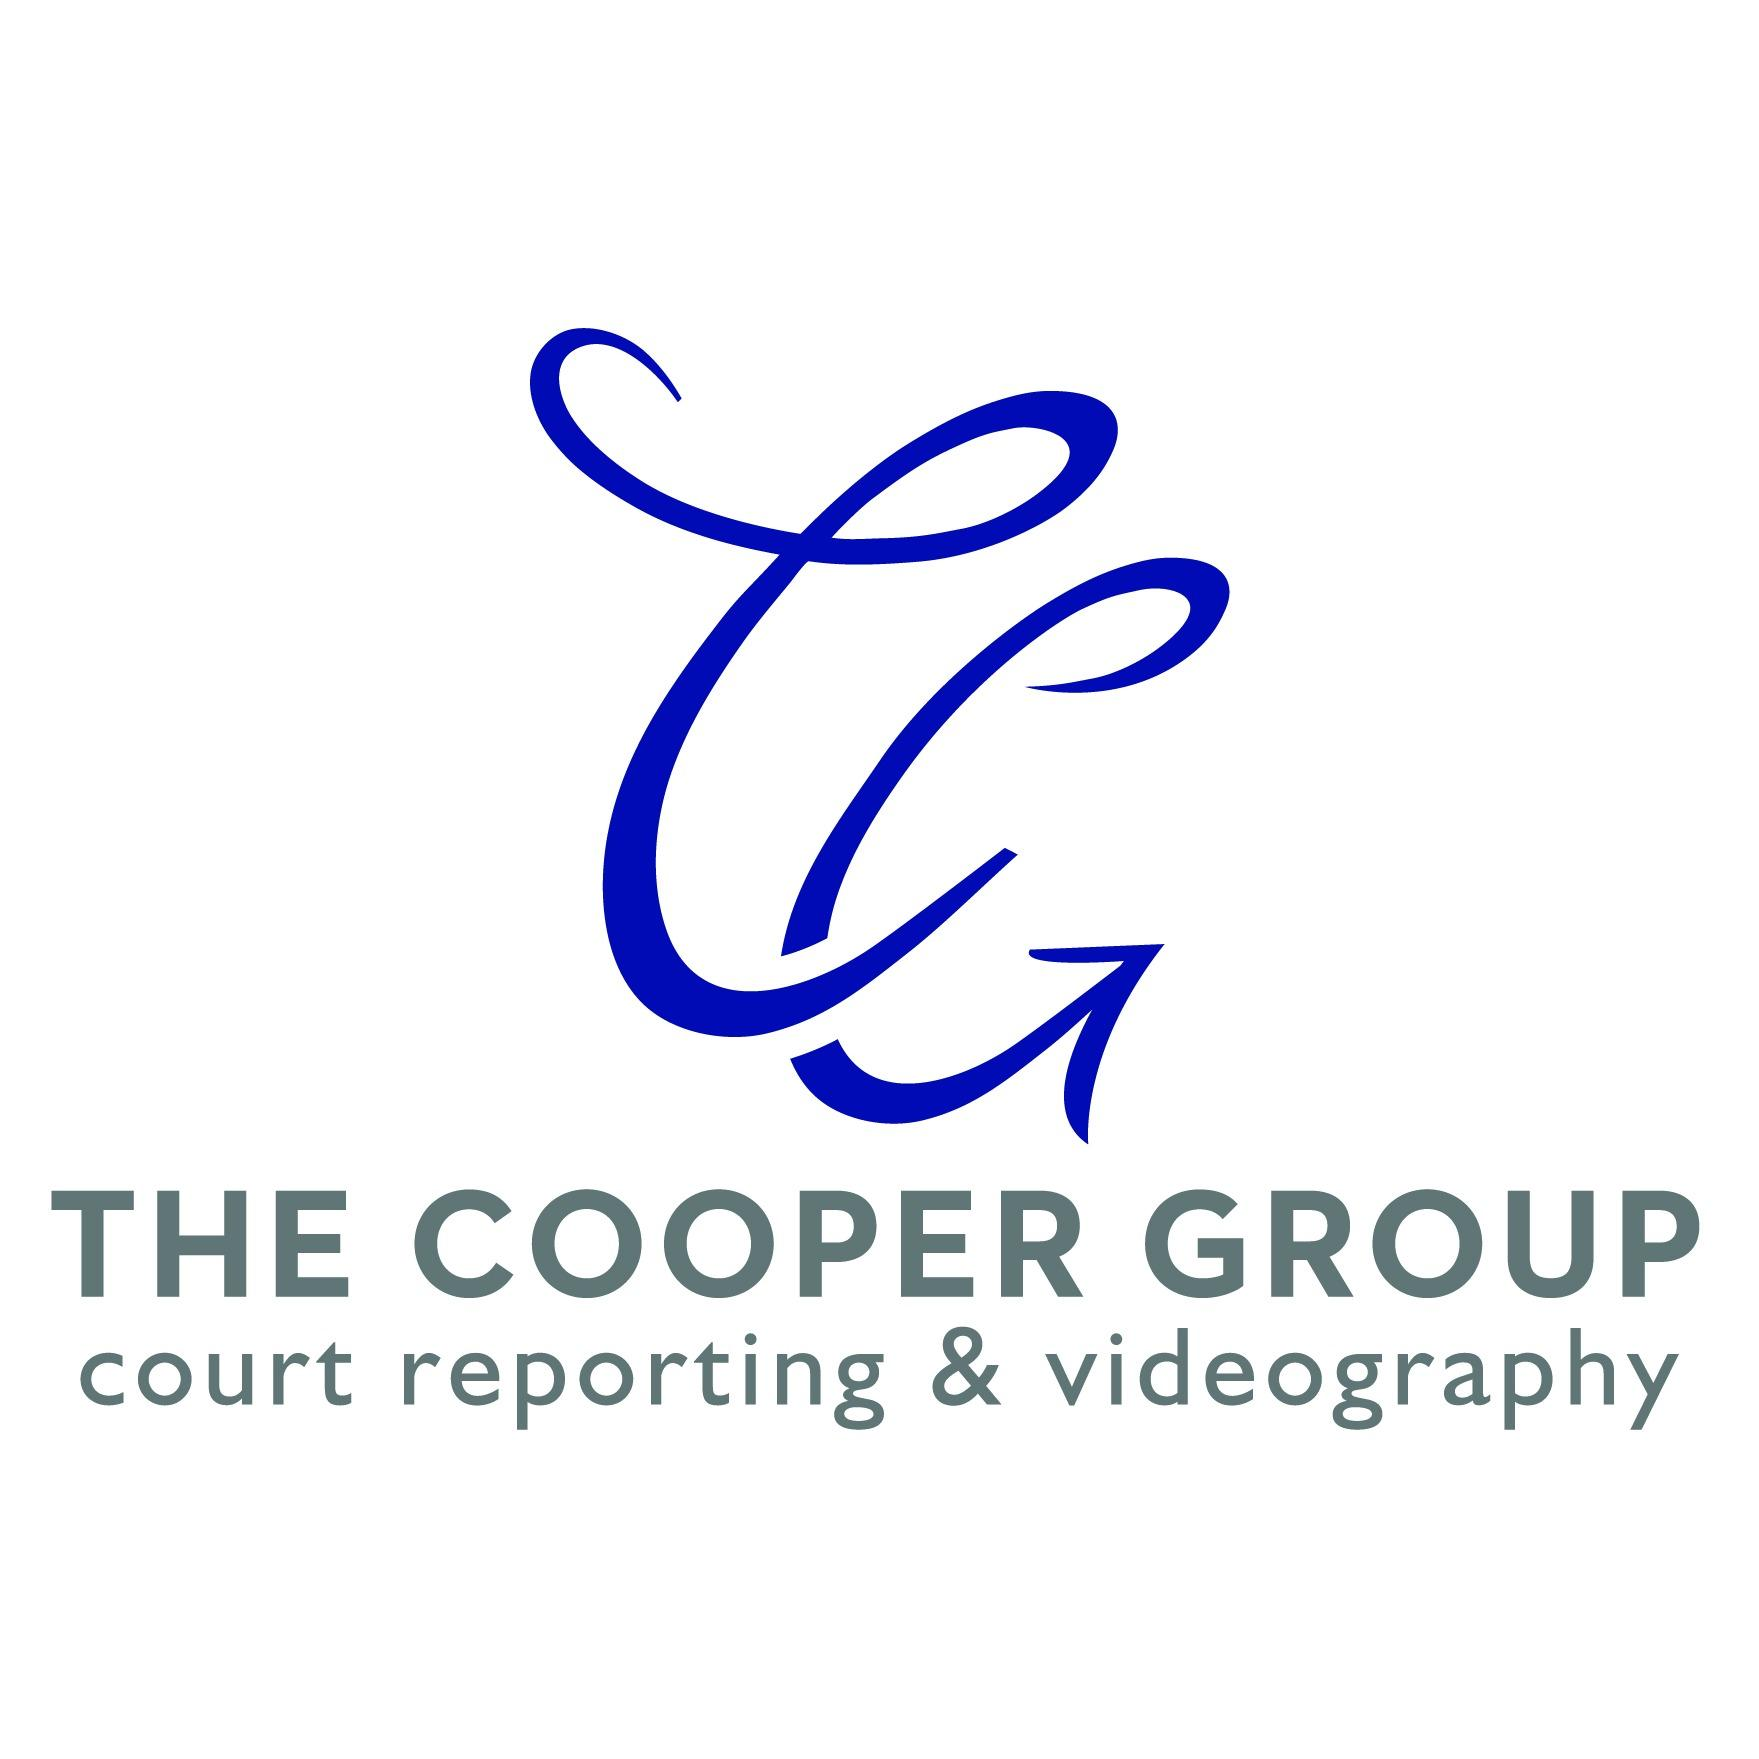 The Cooper Group Court Reporting & Videography